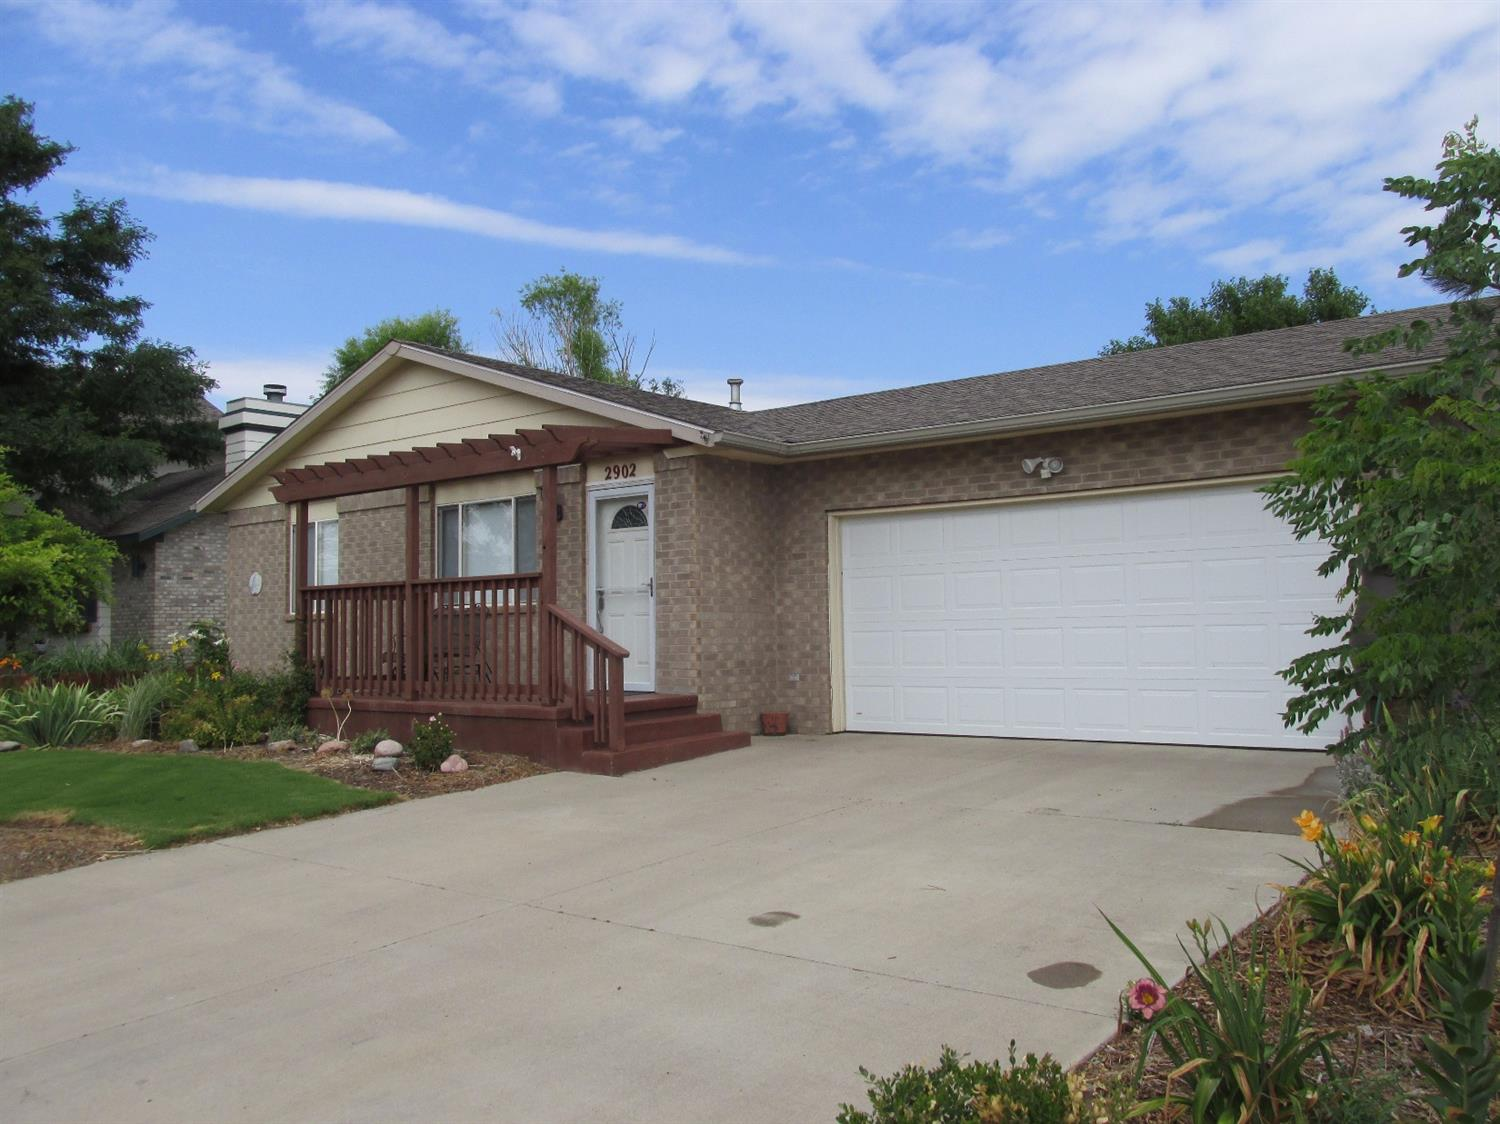 2902 Terrace Place, Garden City, KS 67846